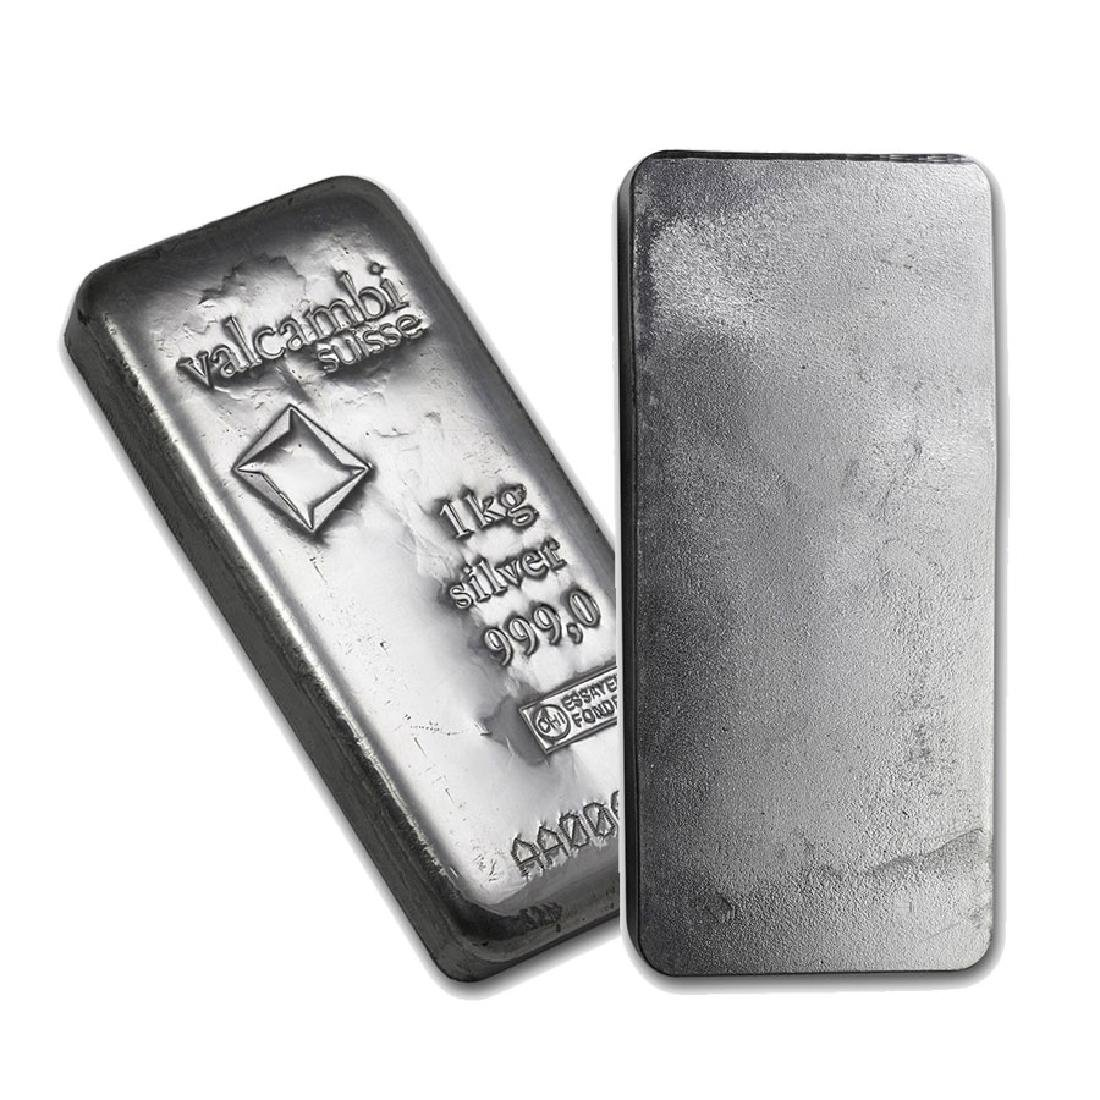 One piece 1 kilo 0.999 Fine Silver Bar Valcambi with